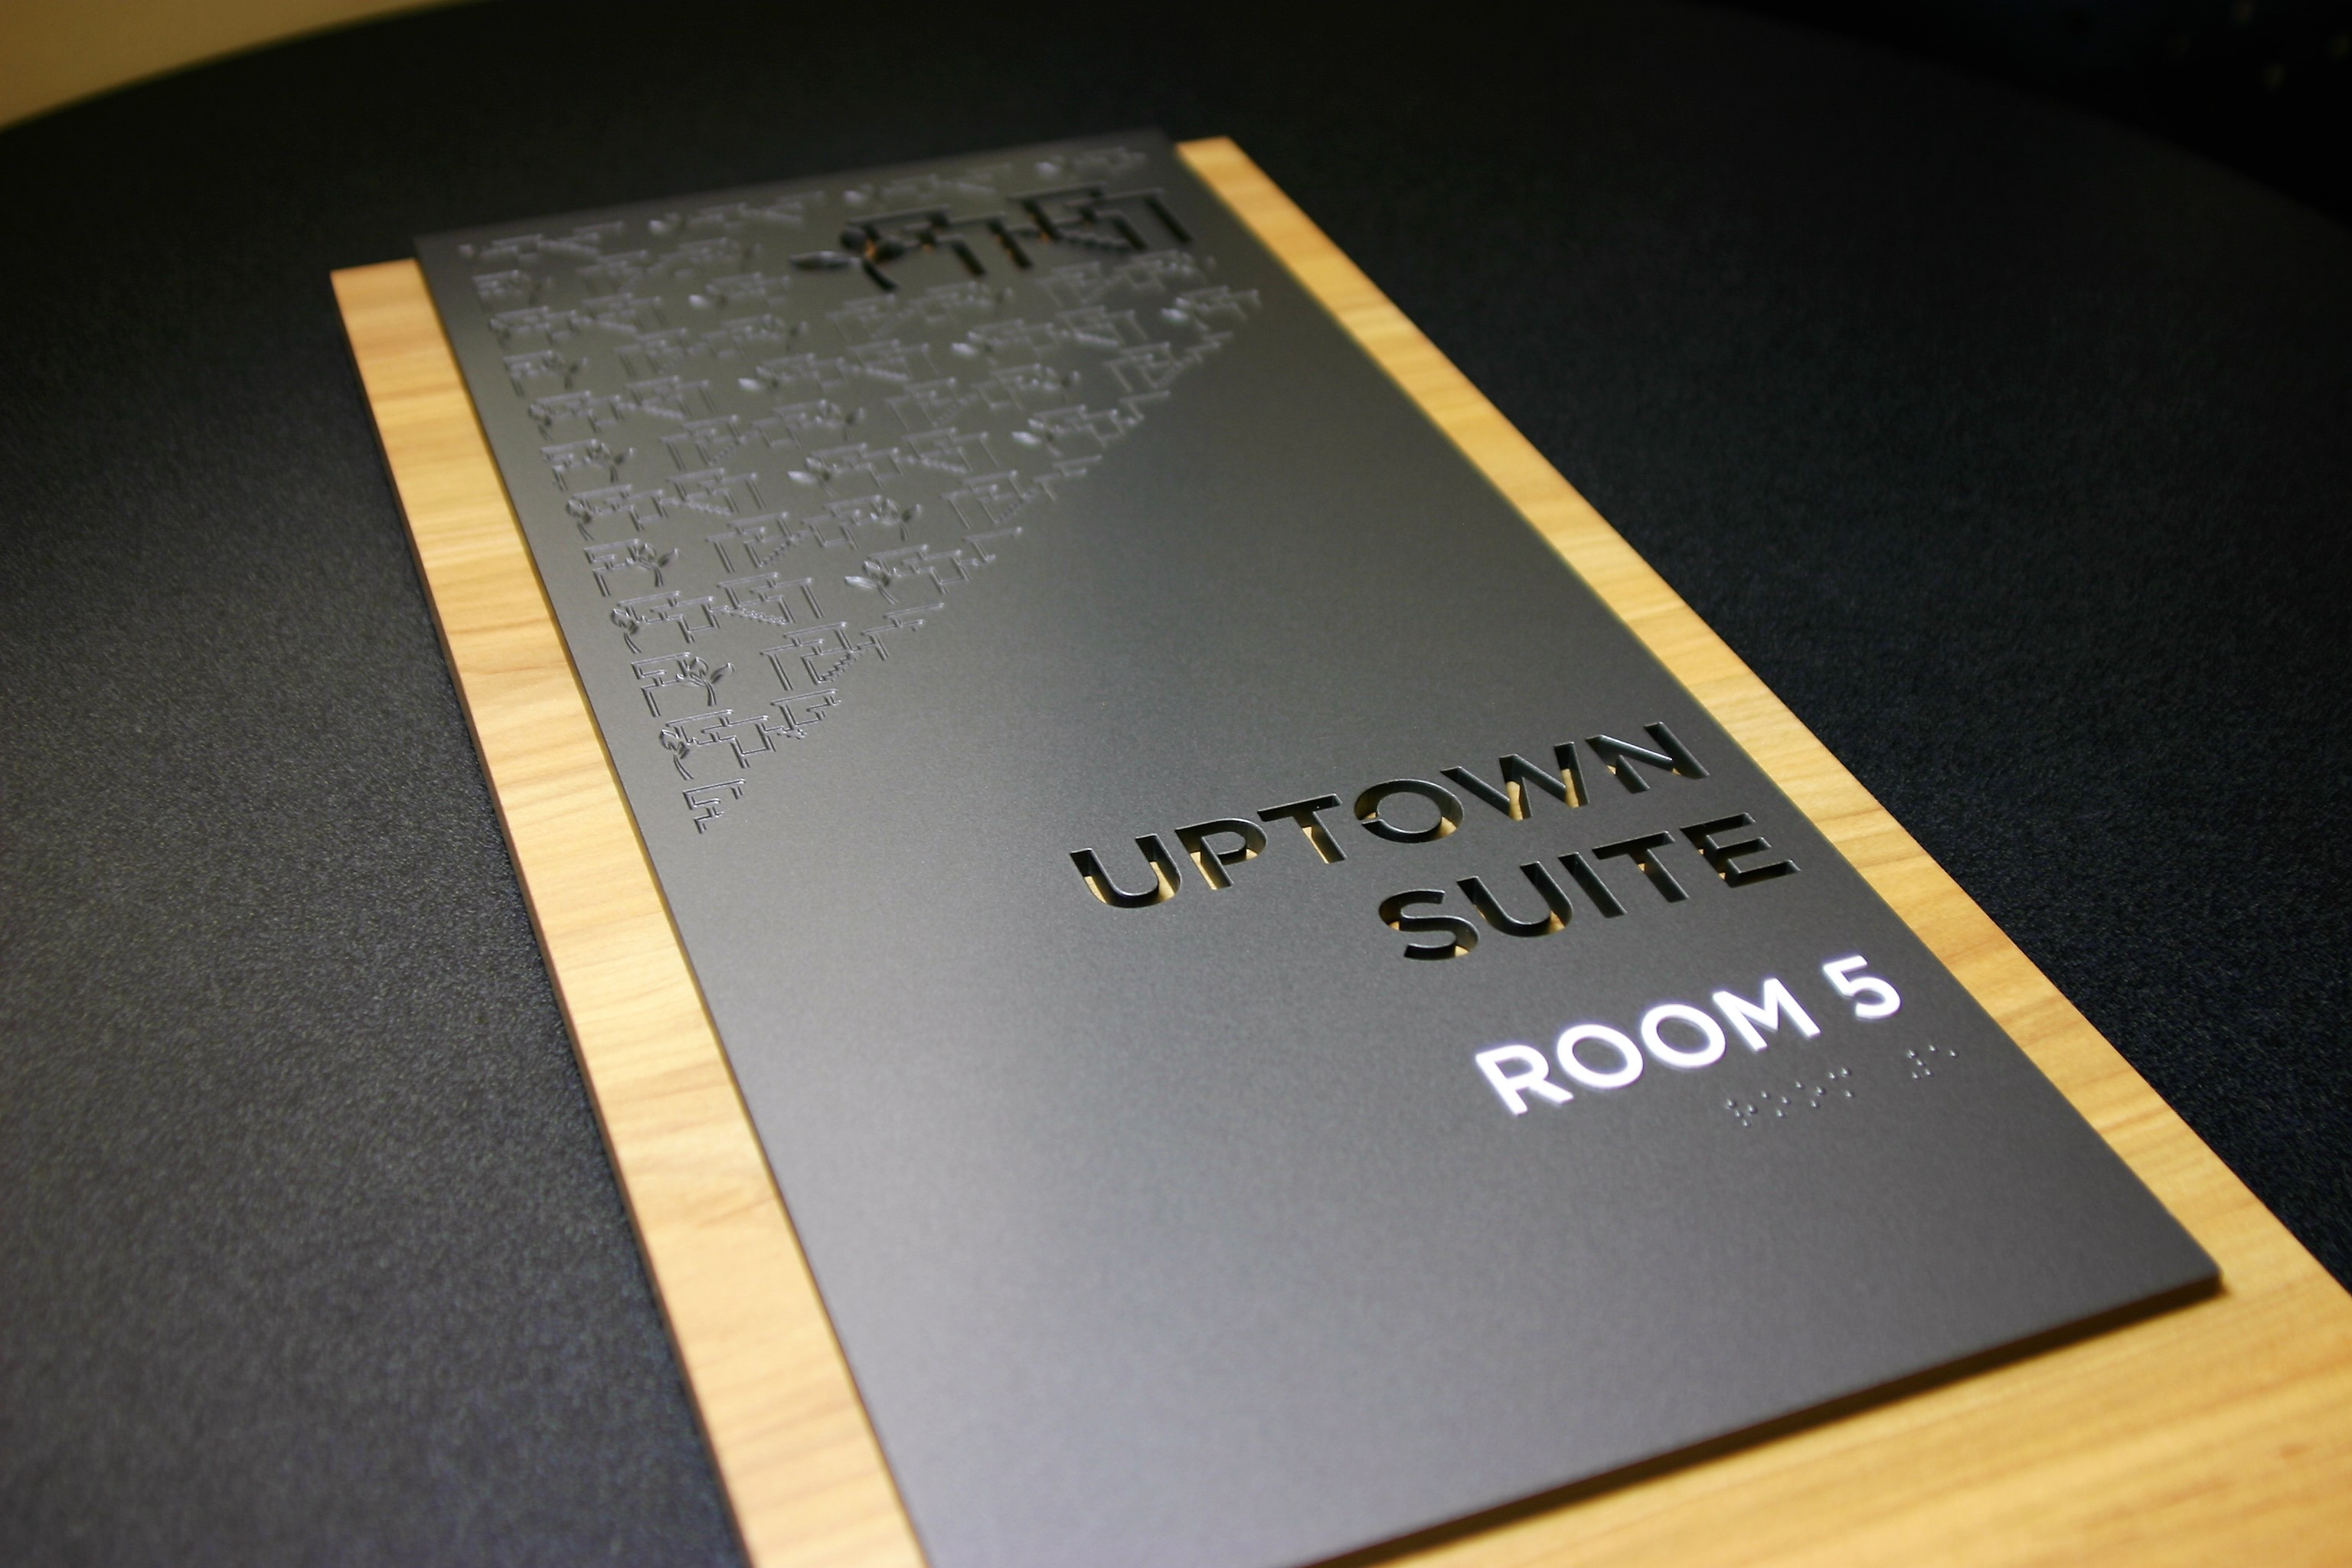 """.25"""" acrylic painted with laser engraved graphics and letter cutouts. Surface applied raised text and friction fit clear raster braille. .5"""" thick acrylic backplate with wood laminate face and painted edges."""